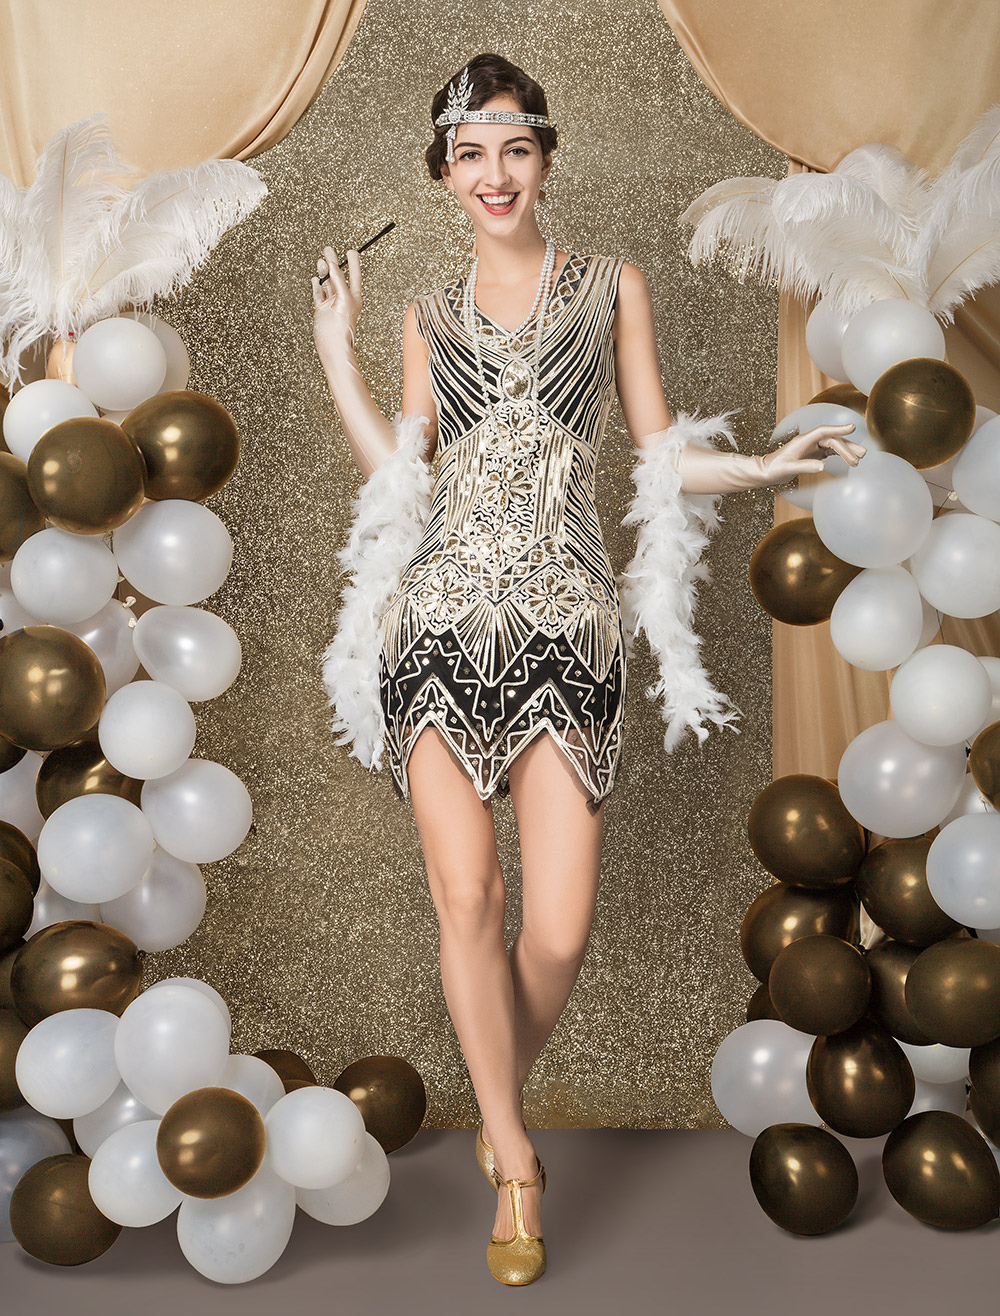 262c128a00e0 ... Flapper Dress Costume 1920s Vintage Costume Great Gatsby Women's  Sequined Zigzag Cut Short Dress Halloween-. 12. 30%OFF. Color:Black